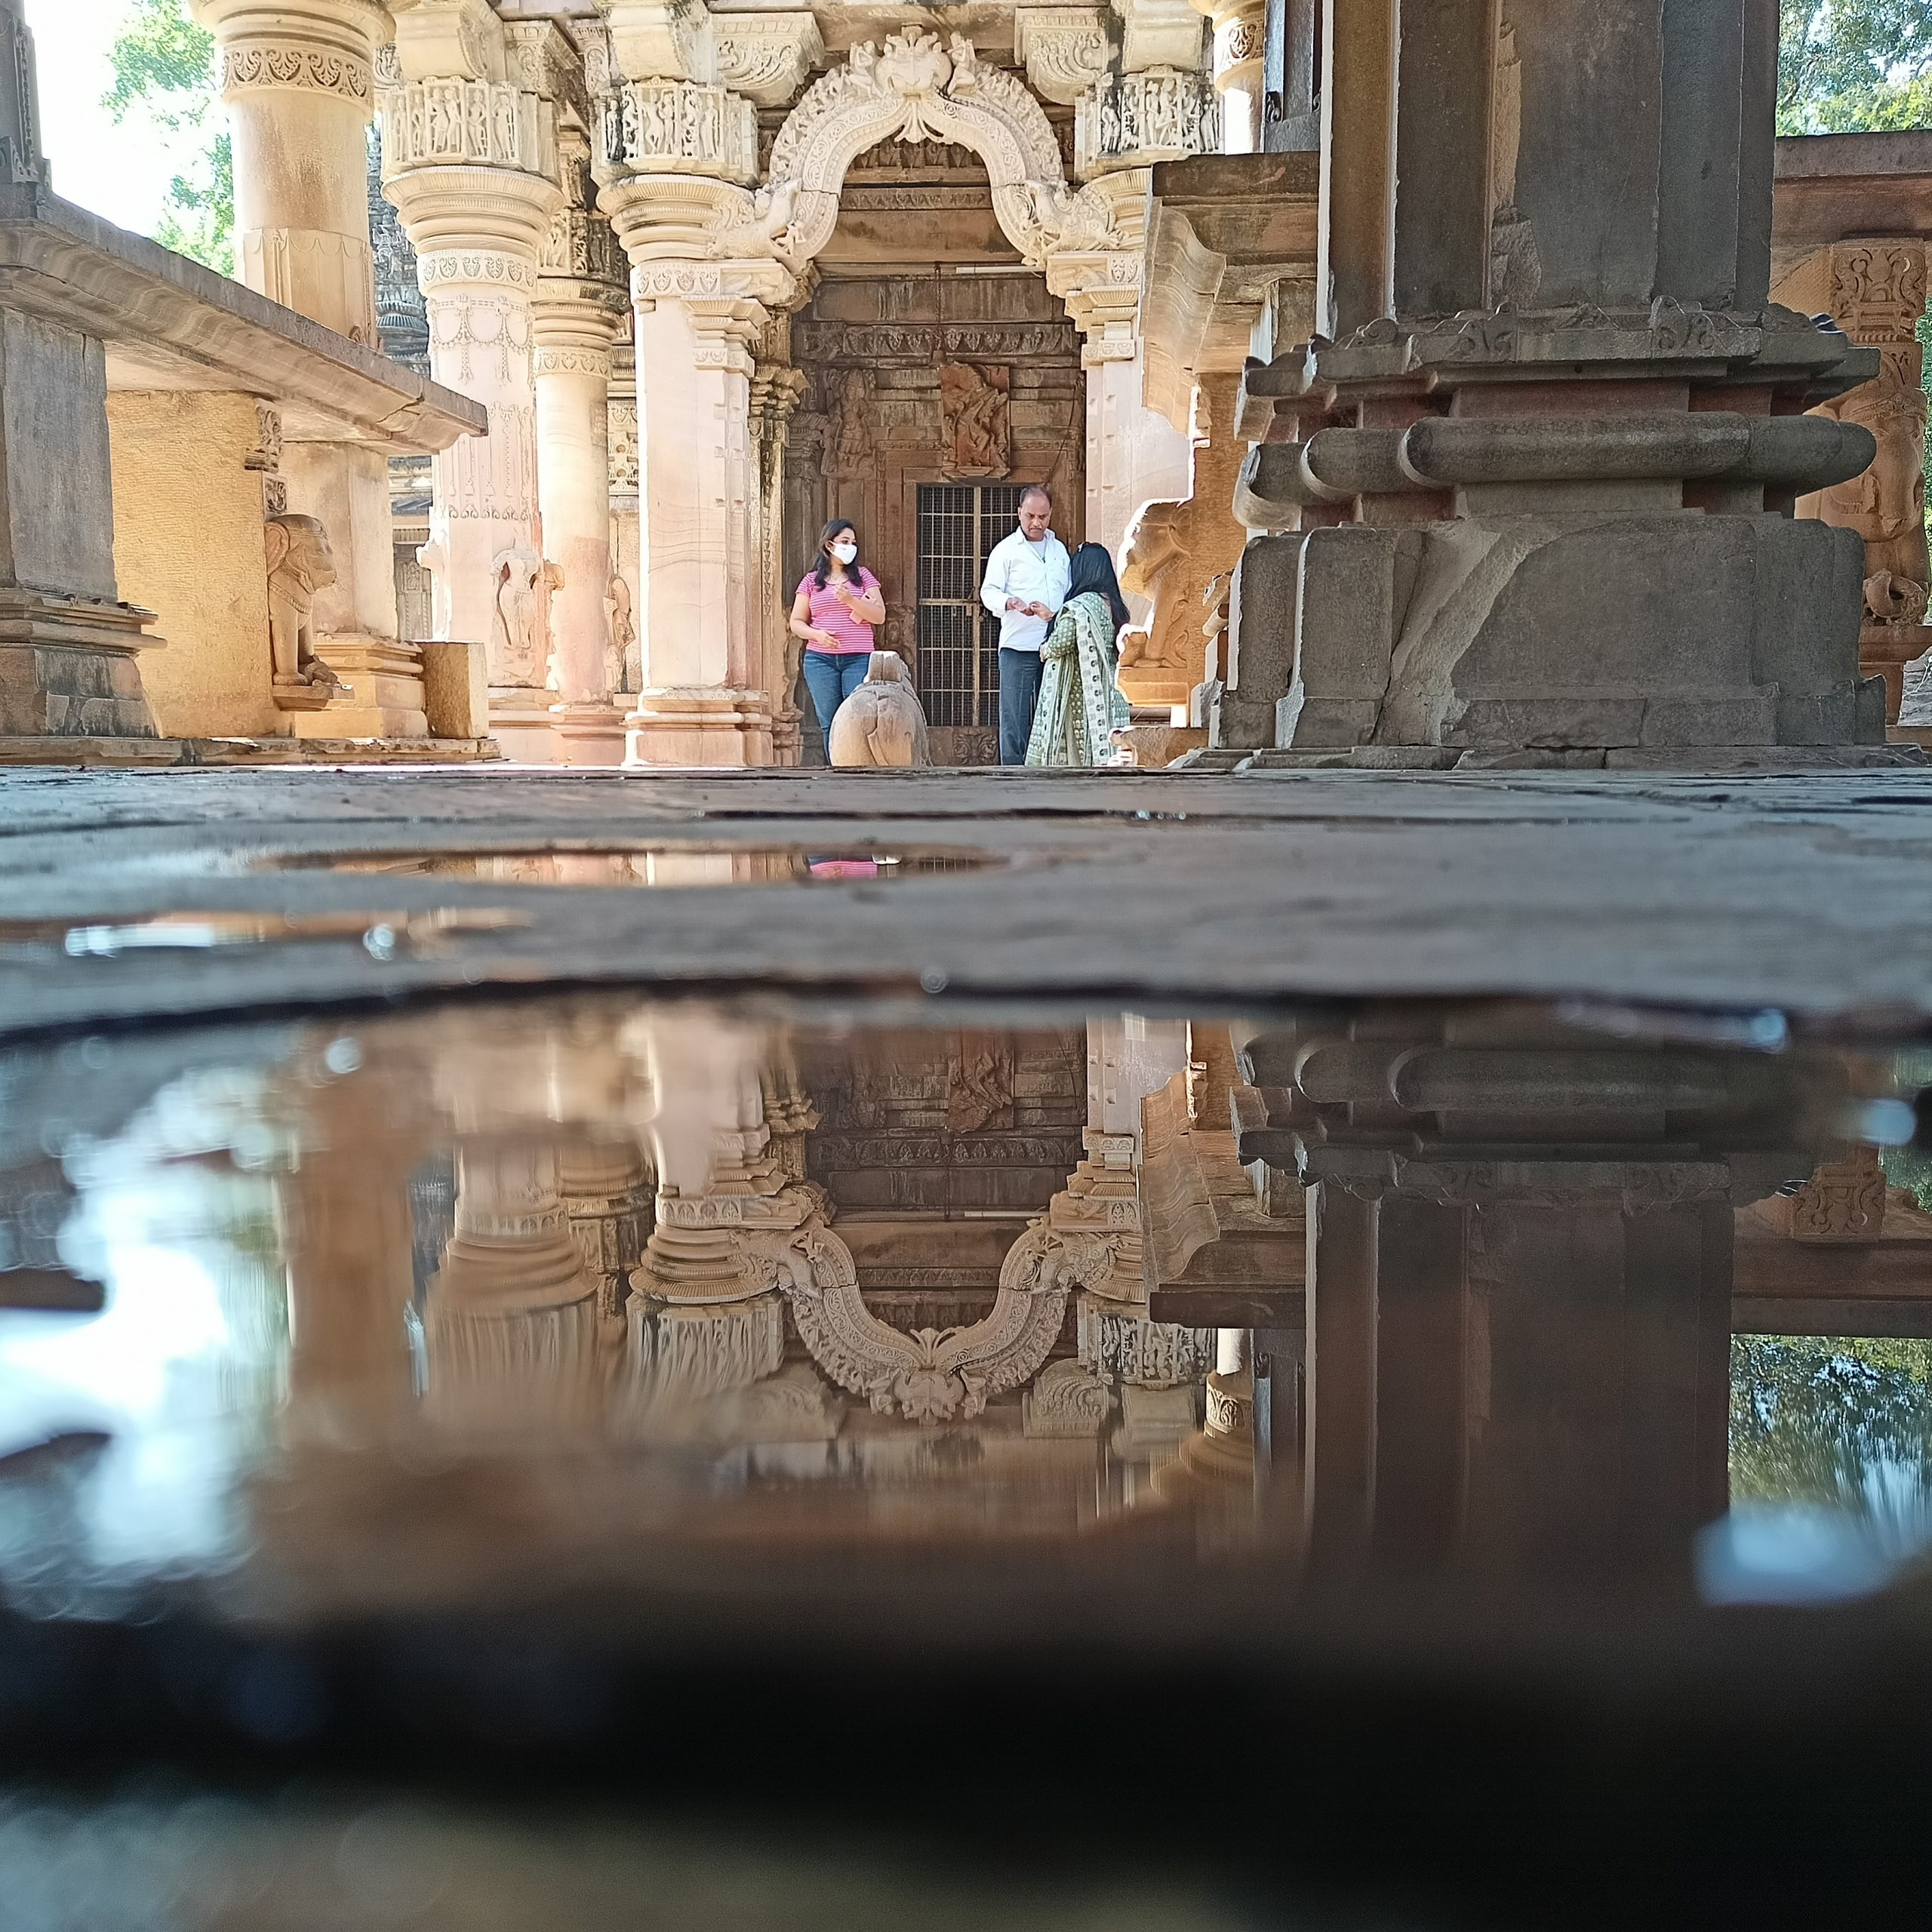 People in a historic temple